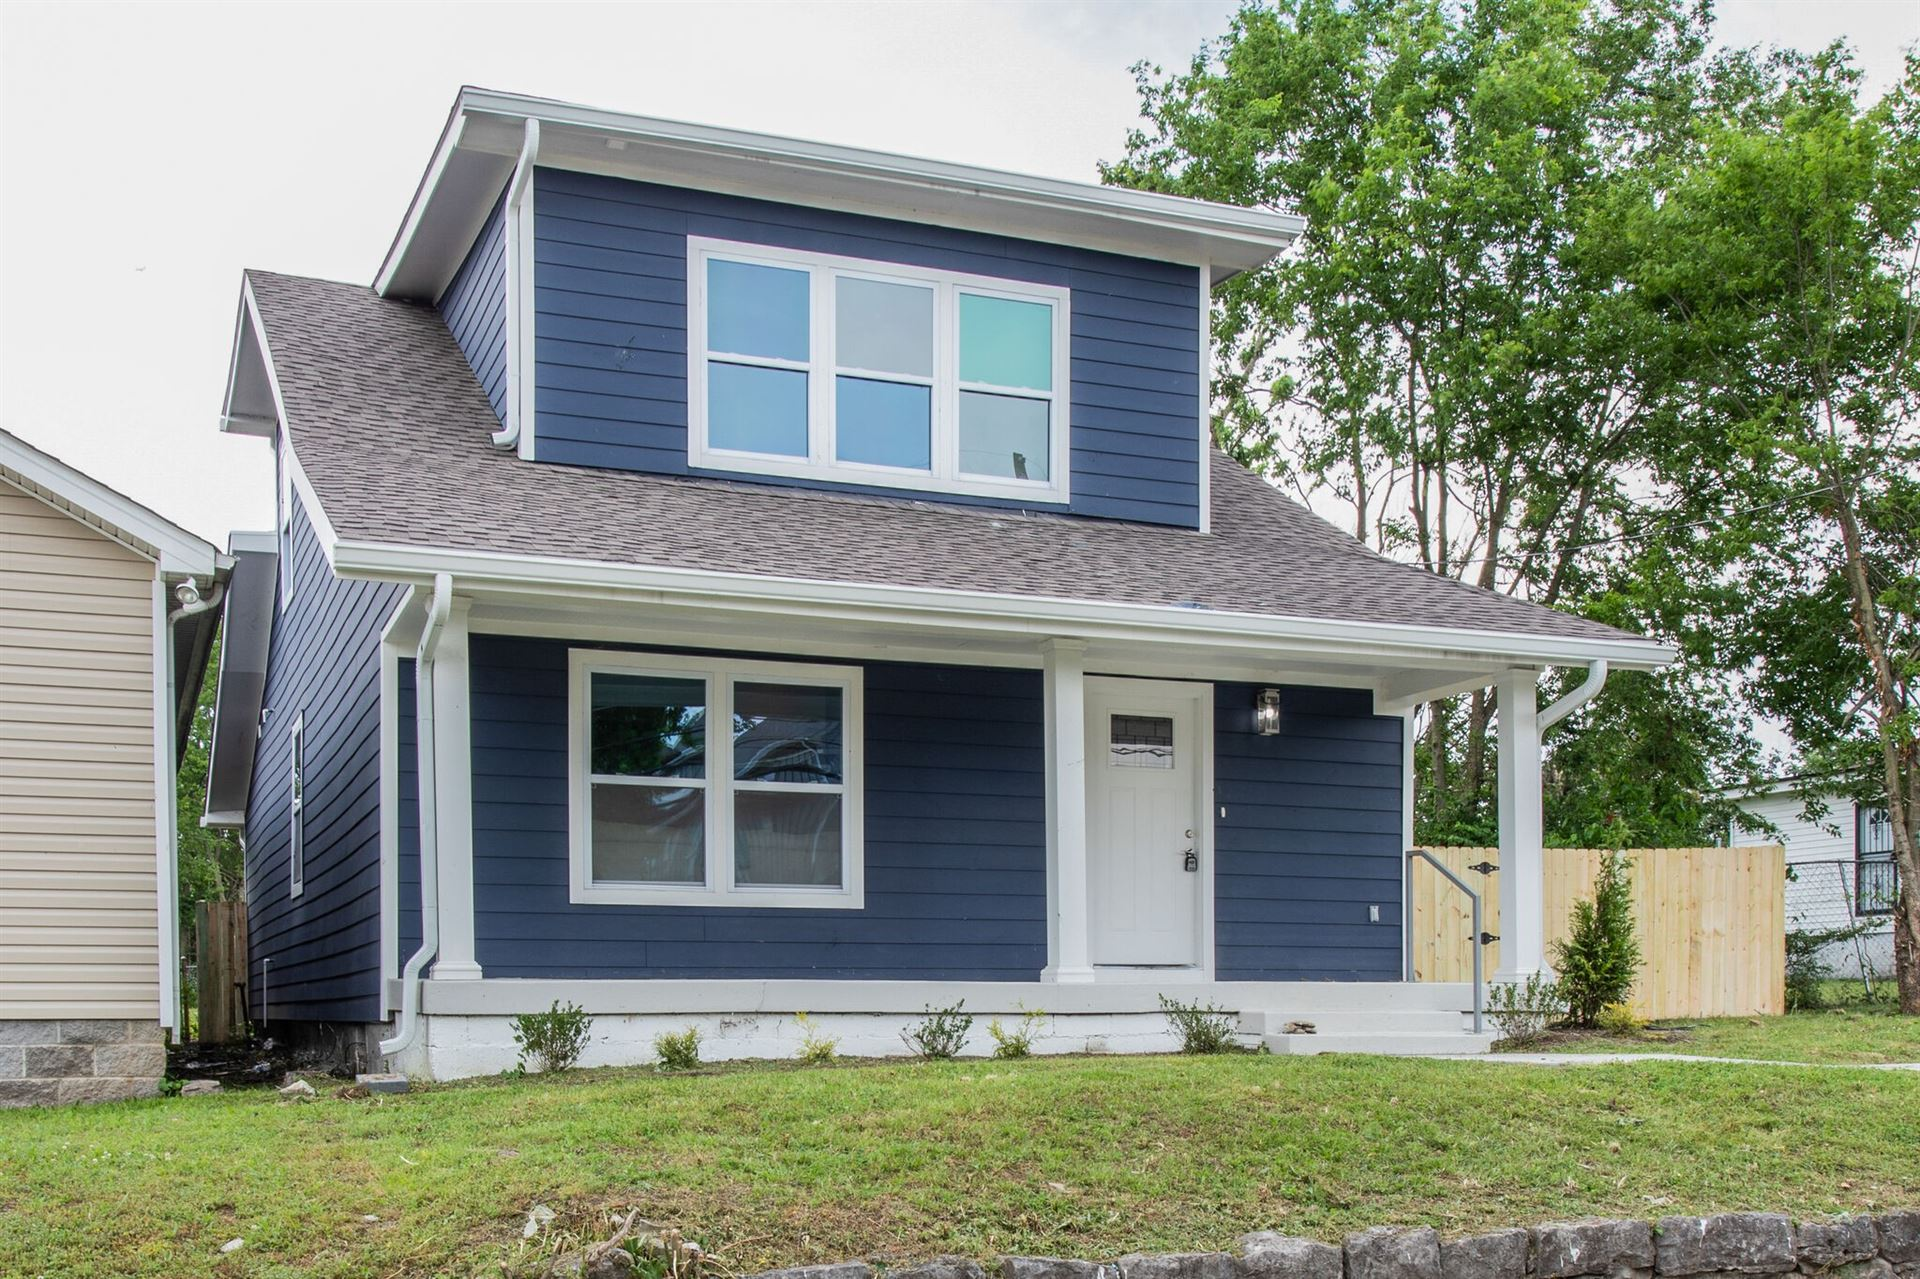 Photo of 1510 14th Ave, N, Nashville, TN 37208 (MLS # 2156802)